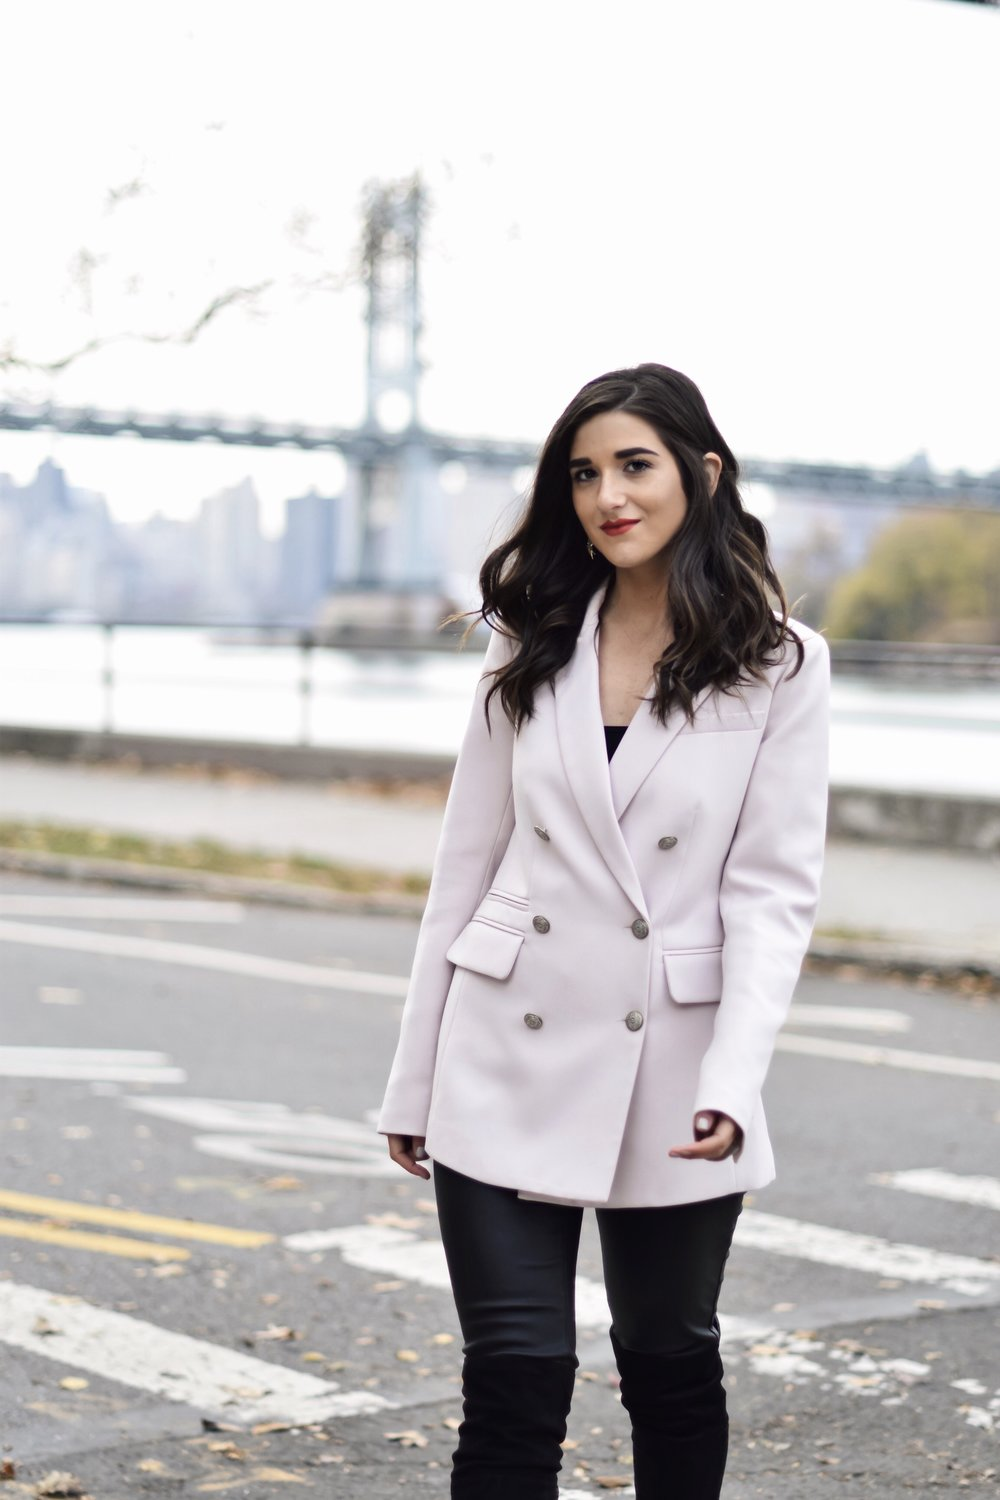 Why Some Bloggers Beg You To Like Their Photos Light Pink Blazer Leather Leggings Esther Santer Fashion Blog NYC Street Style Blogger Outfit OOTD Trendy Rachel Roy Black Over The Knee Boot Girl Women Photoshoot Astoria Fall Winter Shopping Sale Jacket.jpg